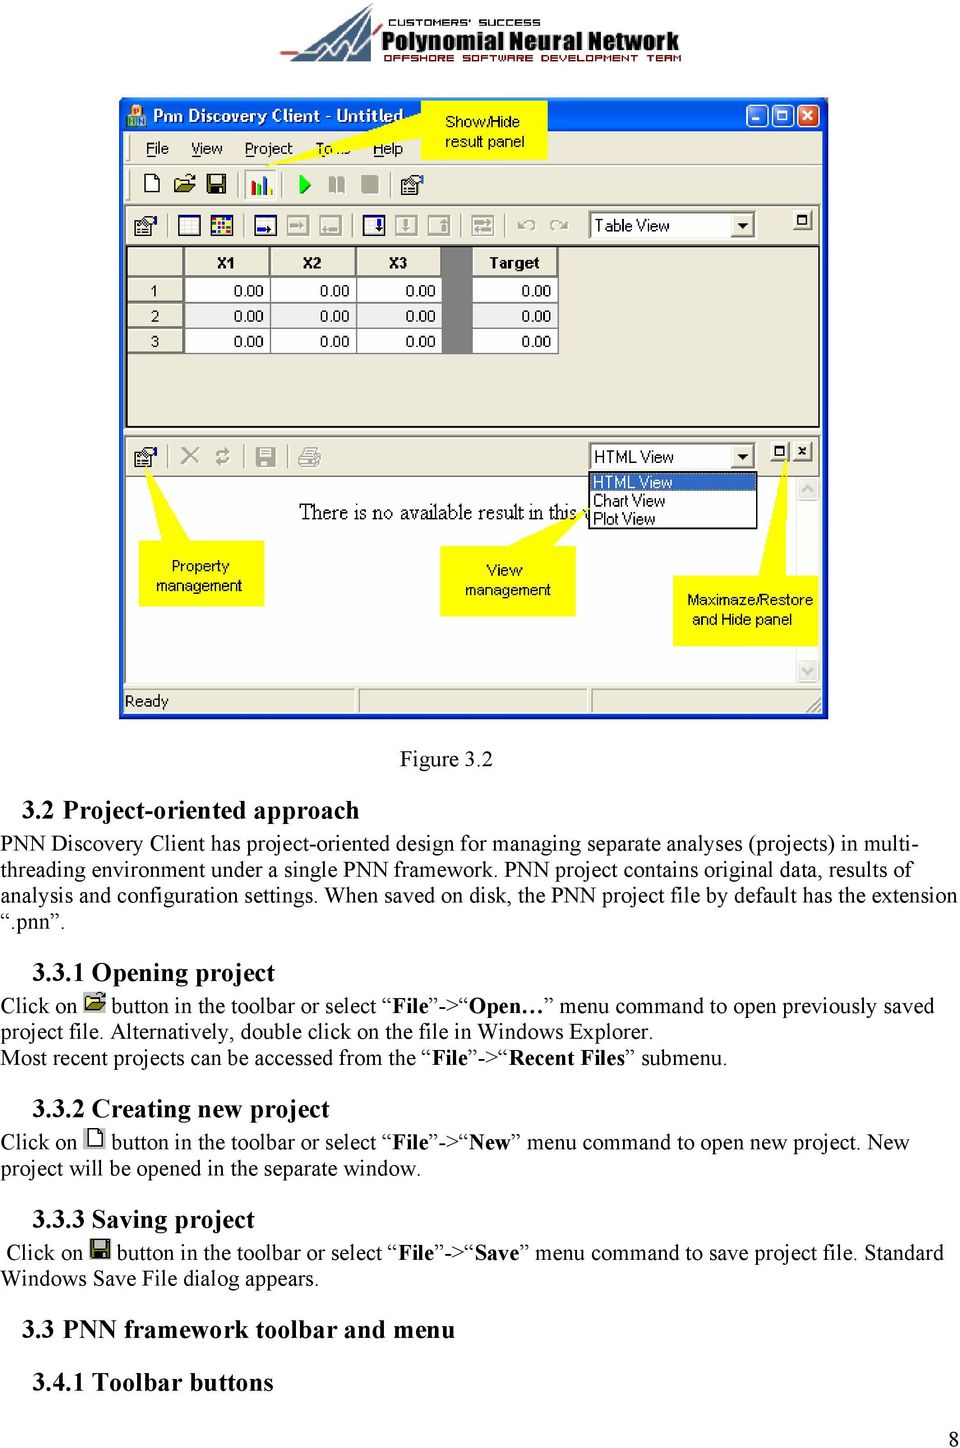 3.1 Opening project Click on button in the toolbar or select File -> Open menu command to open previously saved project file. Alternatively, double click on the file in Windows Explorer.